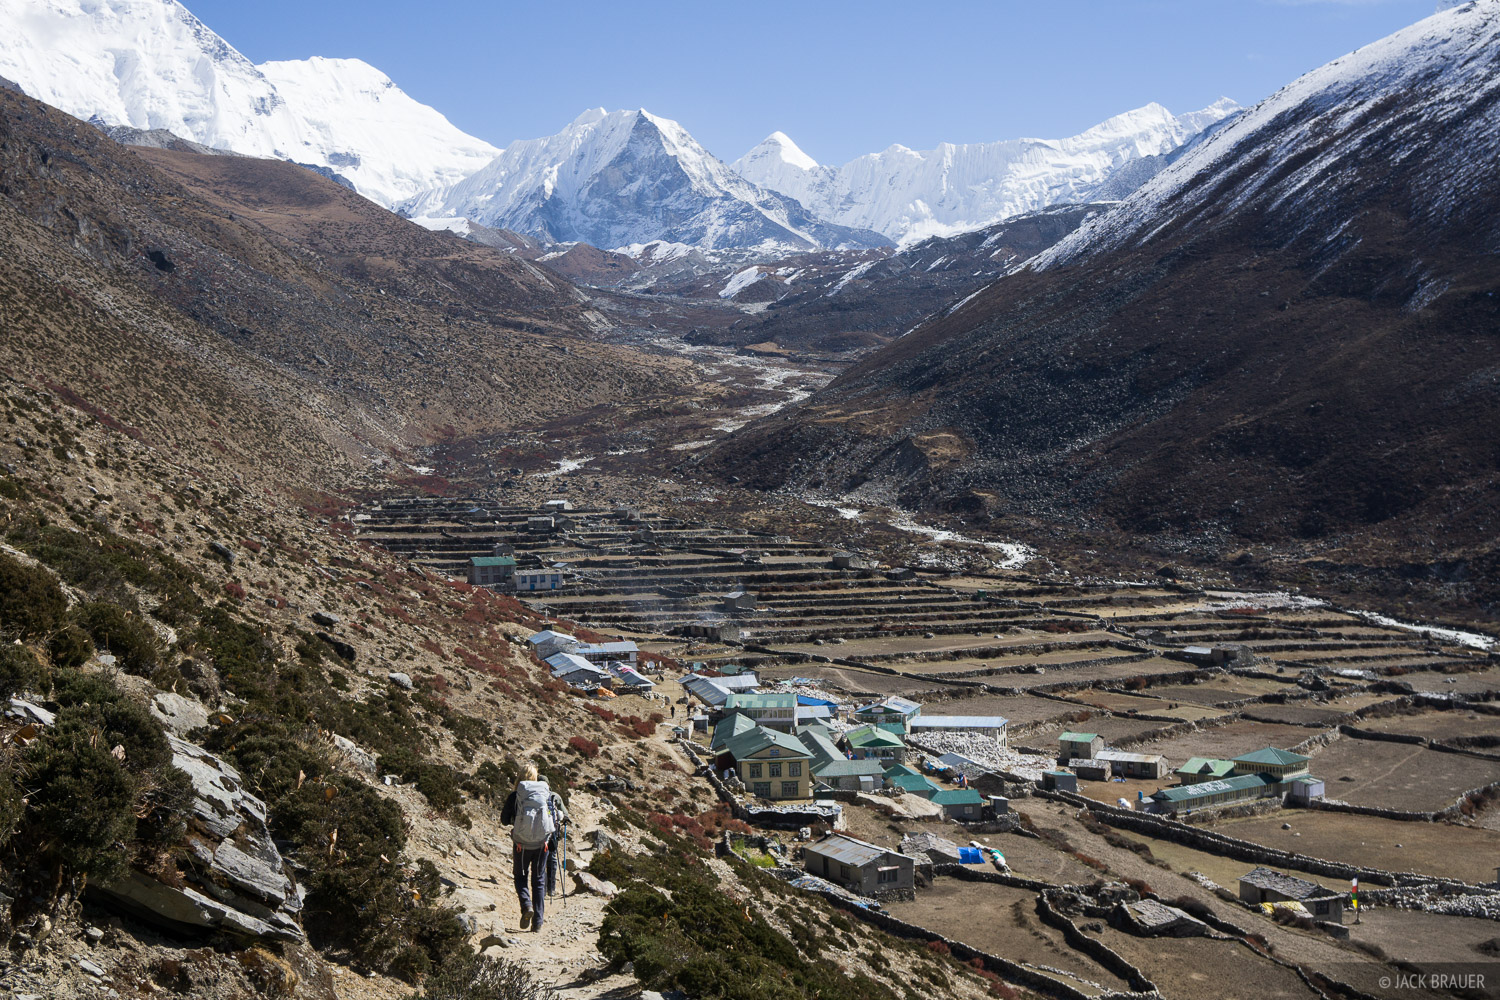 Dingboche,Himalaya,Khumbu,Nepal, hiking, photo